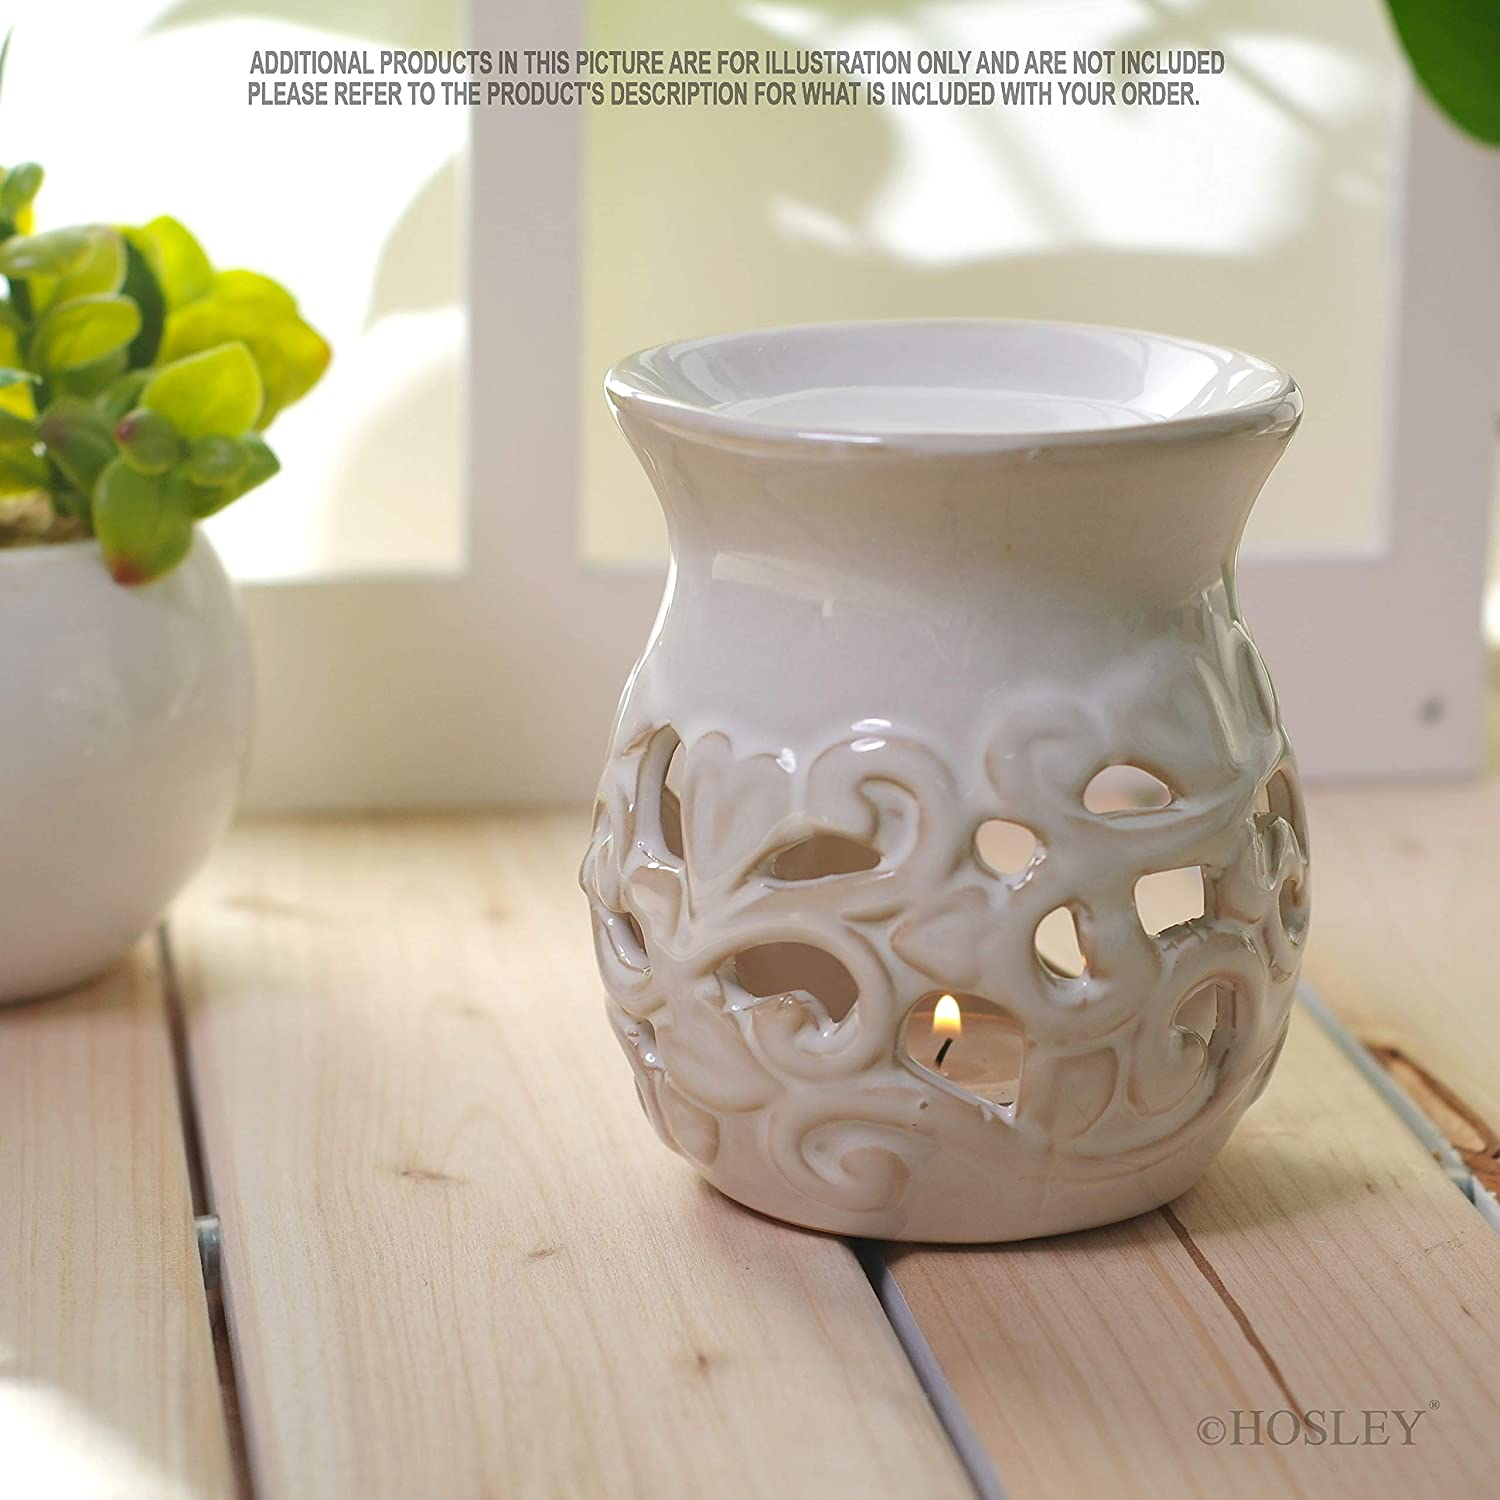 Hosley S Set Of 2 White Ceramic Oil Warmer Candle Warmer 4 3 High Use With Tea Lights Ideal For Spa And Aromatherapy Use With Hosley Brand Wax Melts Cubes Essential Oils